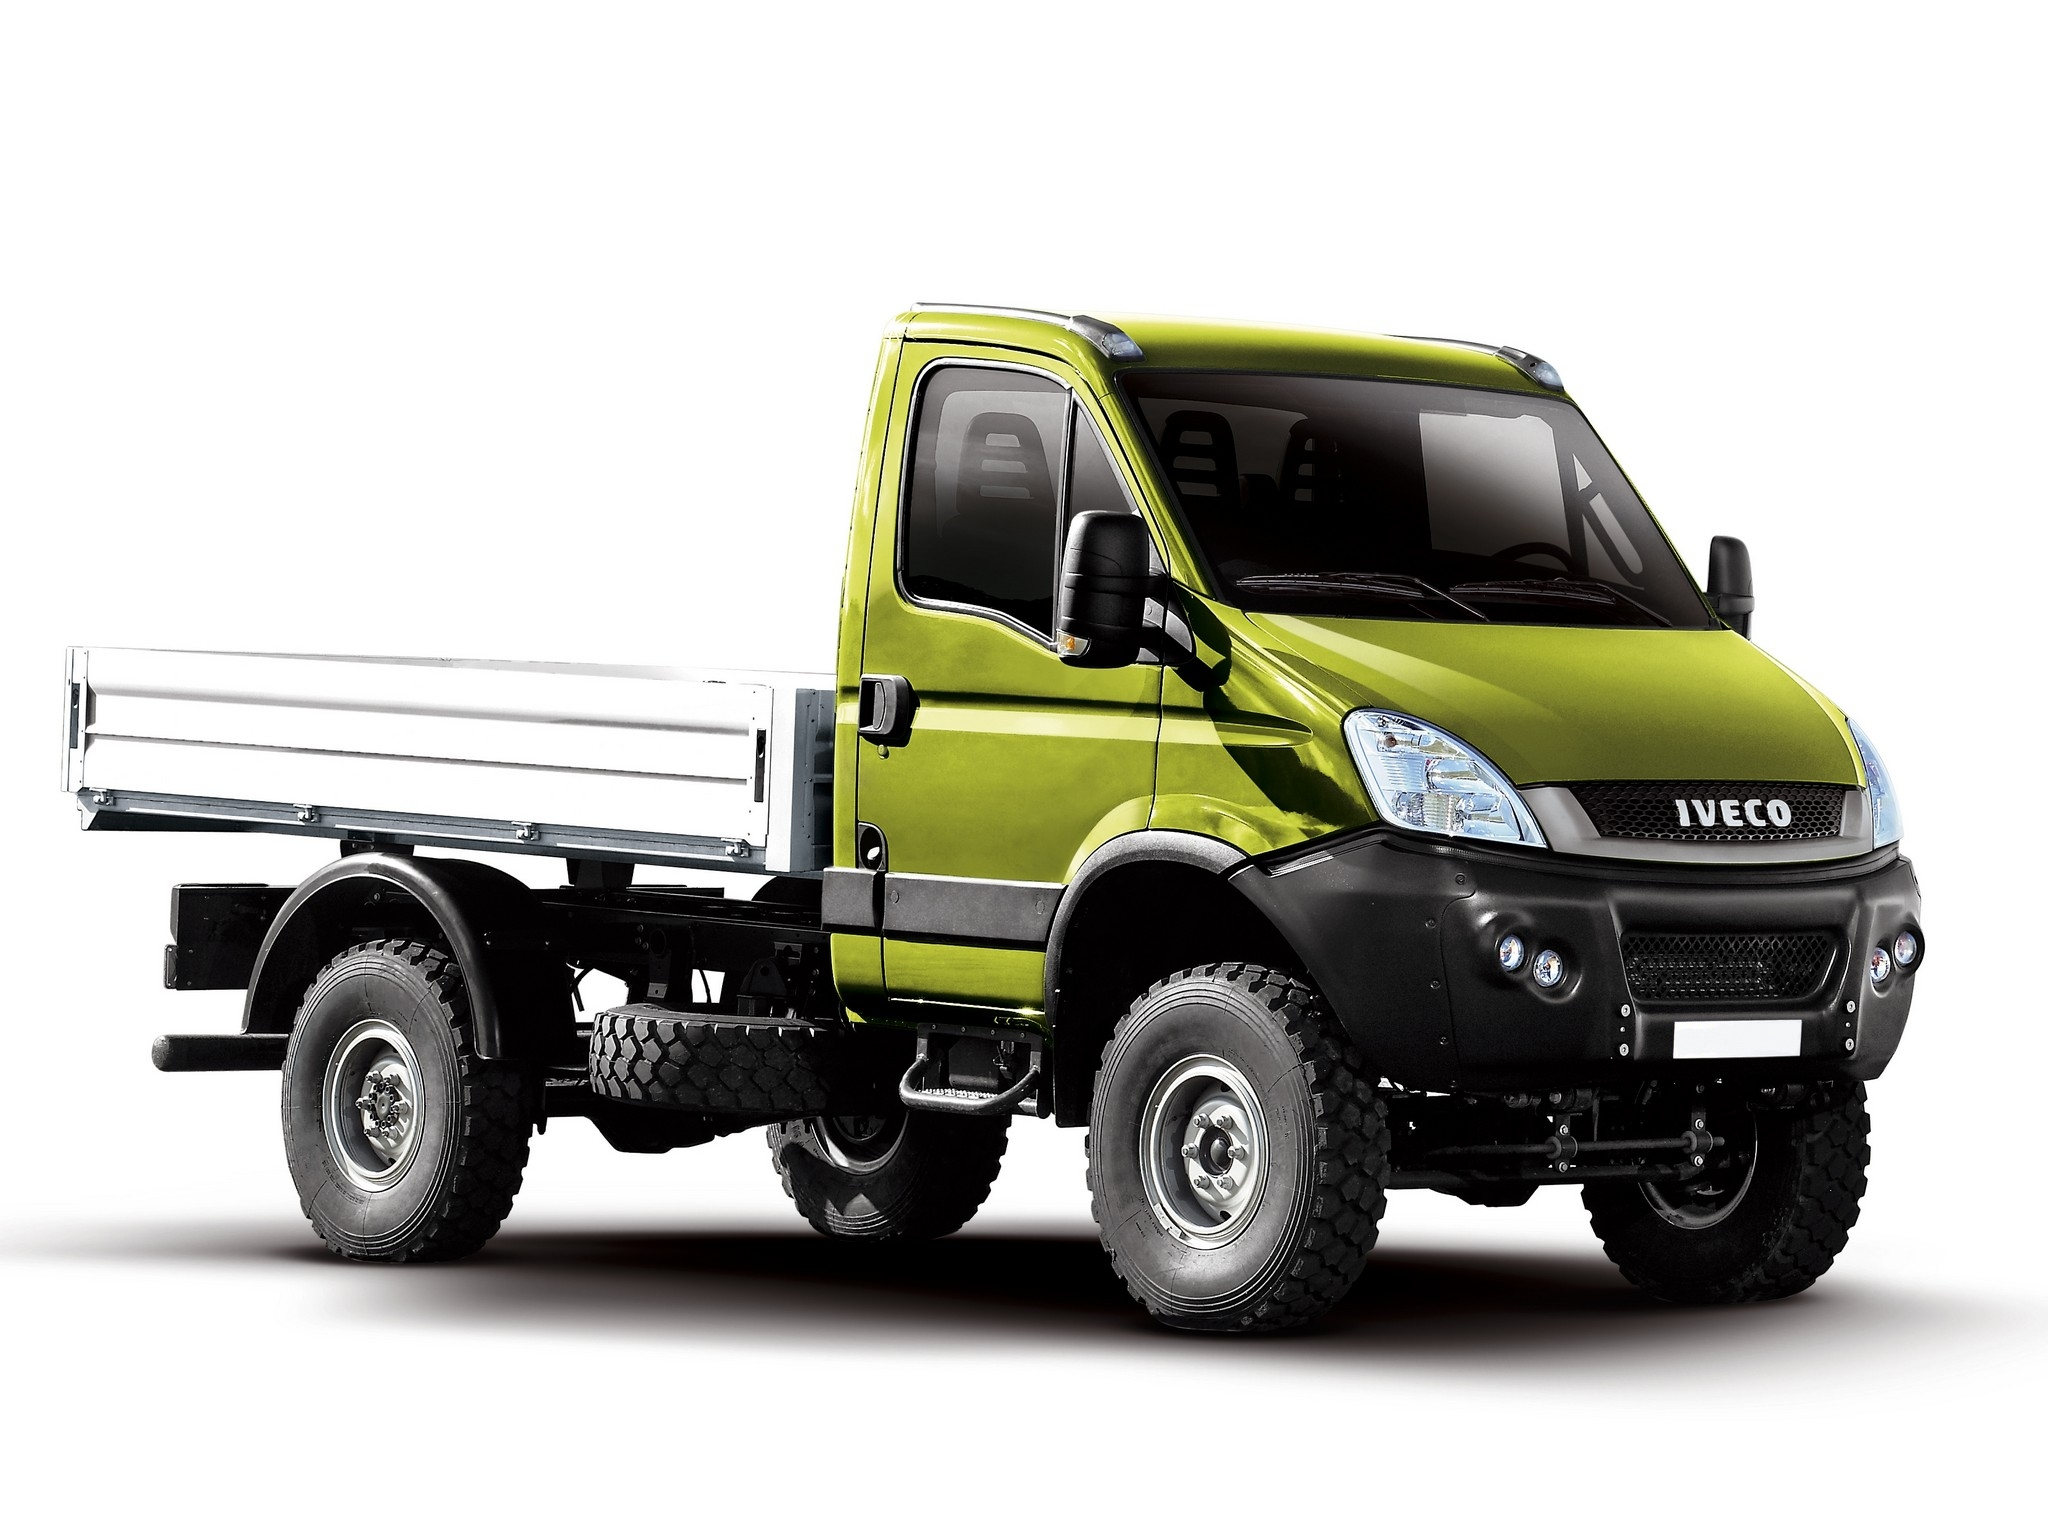 iveco daily 4x4 board 4th generation 3 0 d mt 4x4 l2 55s17w photos 1 image. Black Bedroom Furniture Sets. Home Design Ideas